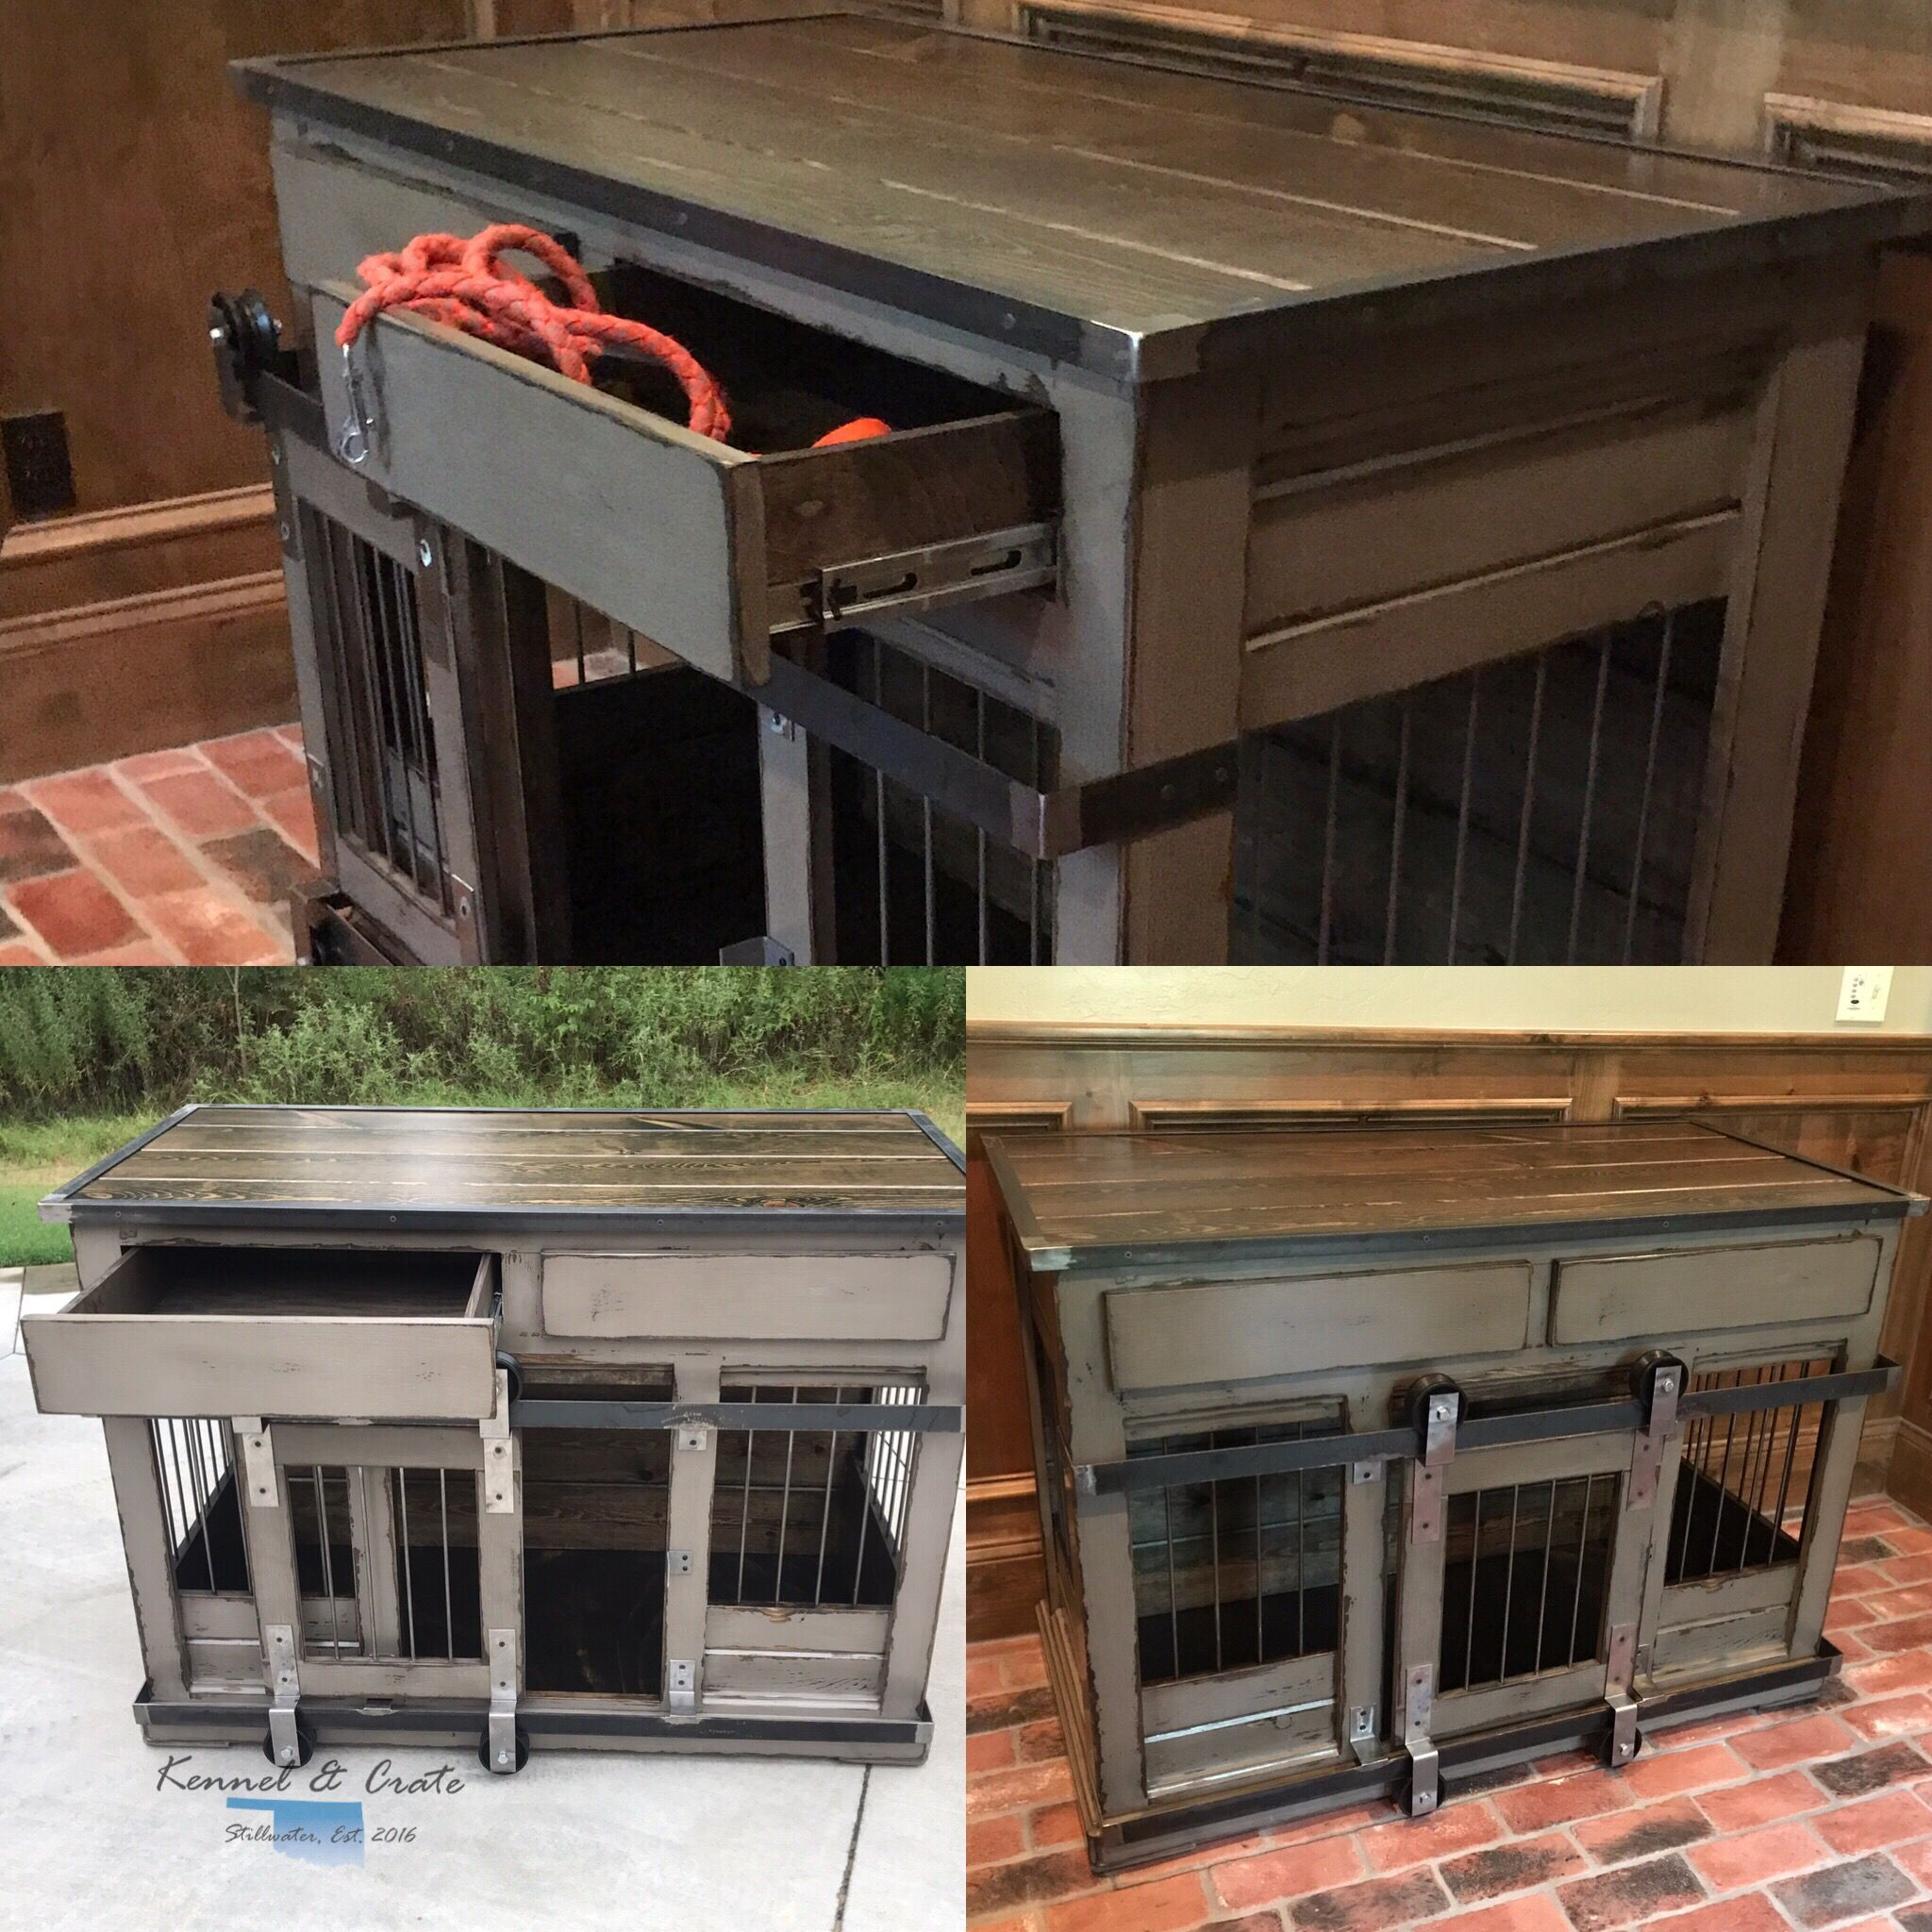 Farmhouse Style Kennel And Crate Double Dog Kennel For The Designer In You Featuring Dual Rolling Barn Luxury Dog Kennels Plastic Dog Kennels Dog Kennel Cover